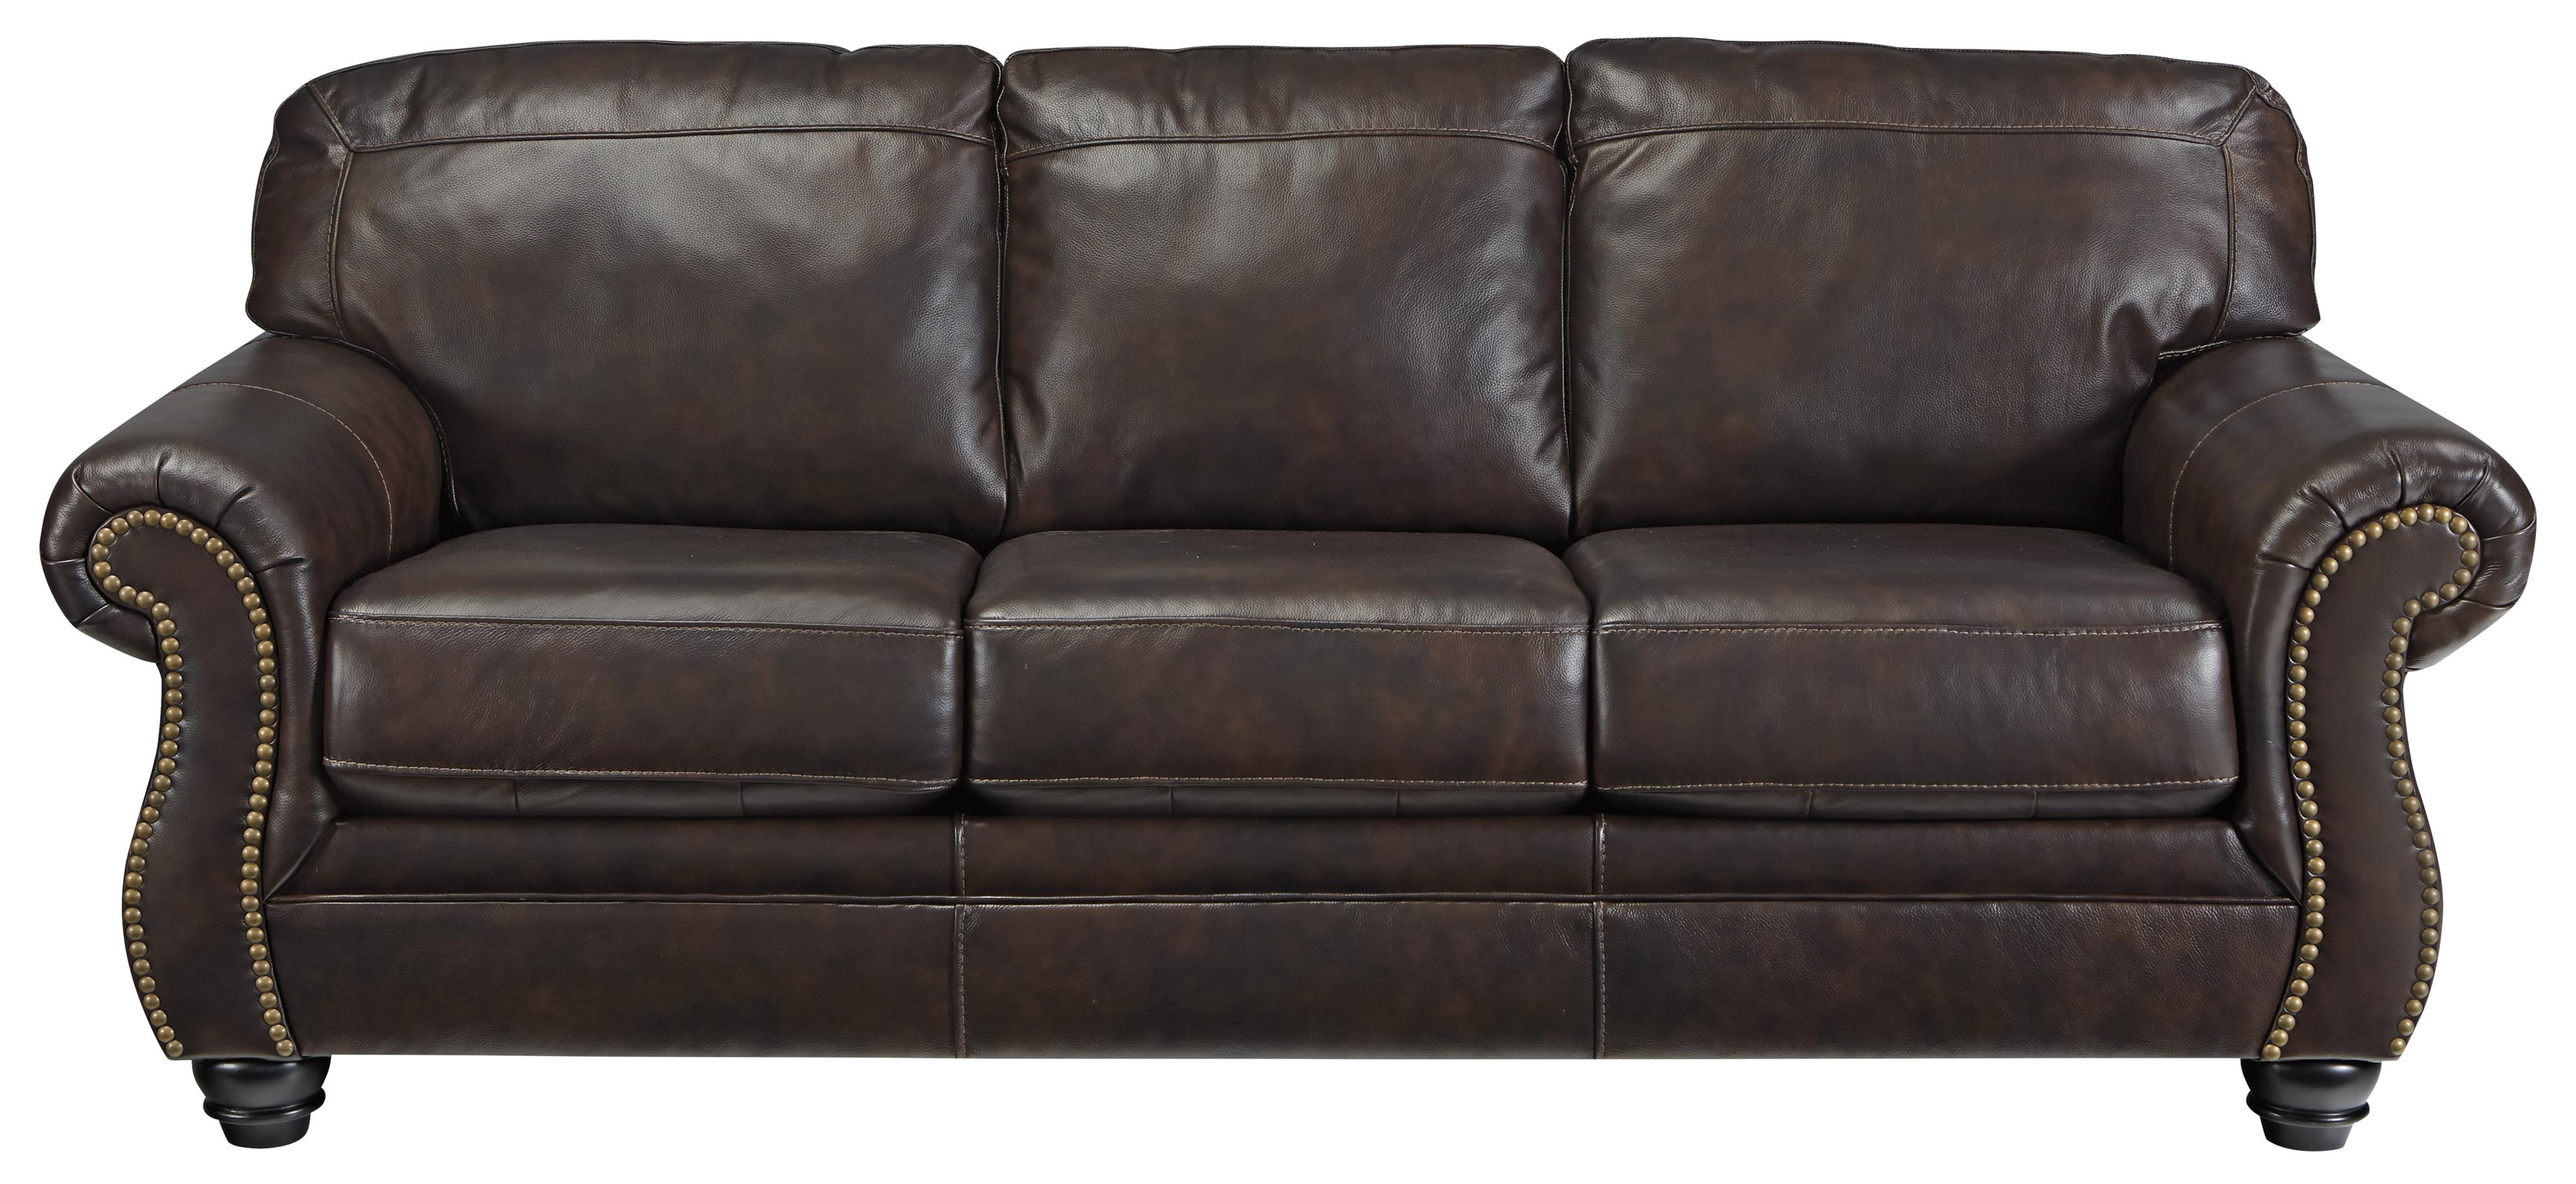 Signature Design By Ashley Brisbane Queen Sofa Sleeper Item Number 8220239